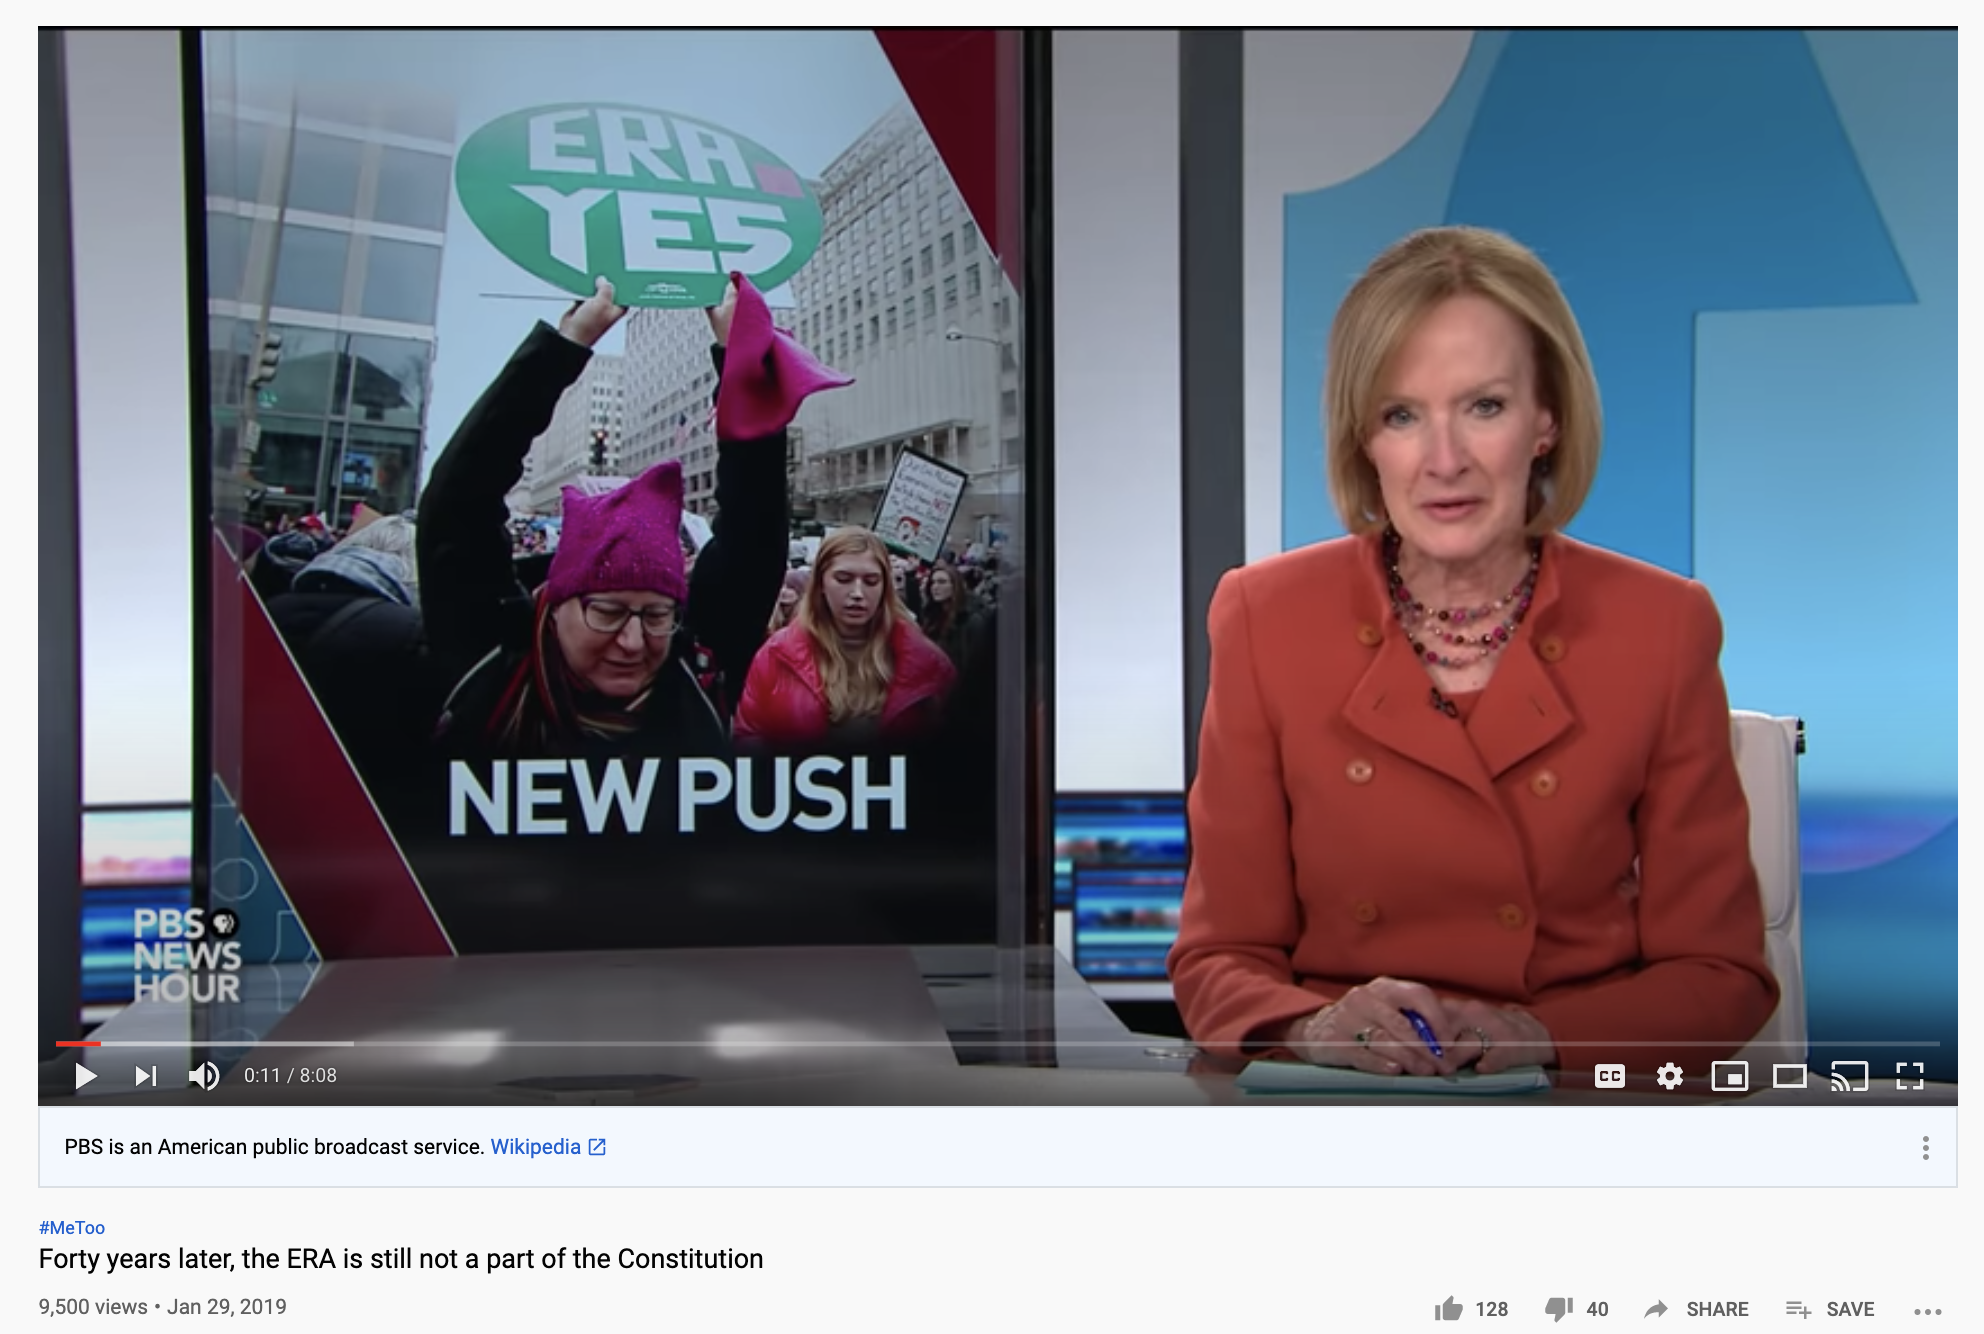 Screenshot of the video Forty years later, the ERA is still not a part of the Constitution on the PBSNewsHour.